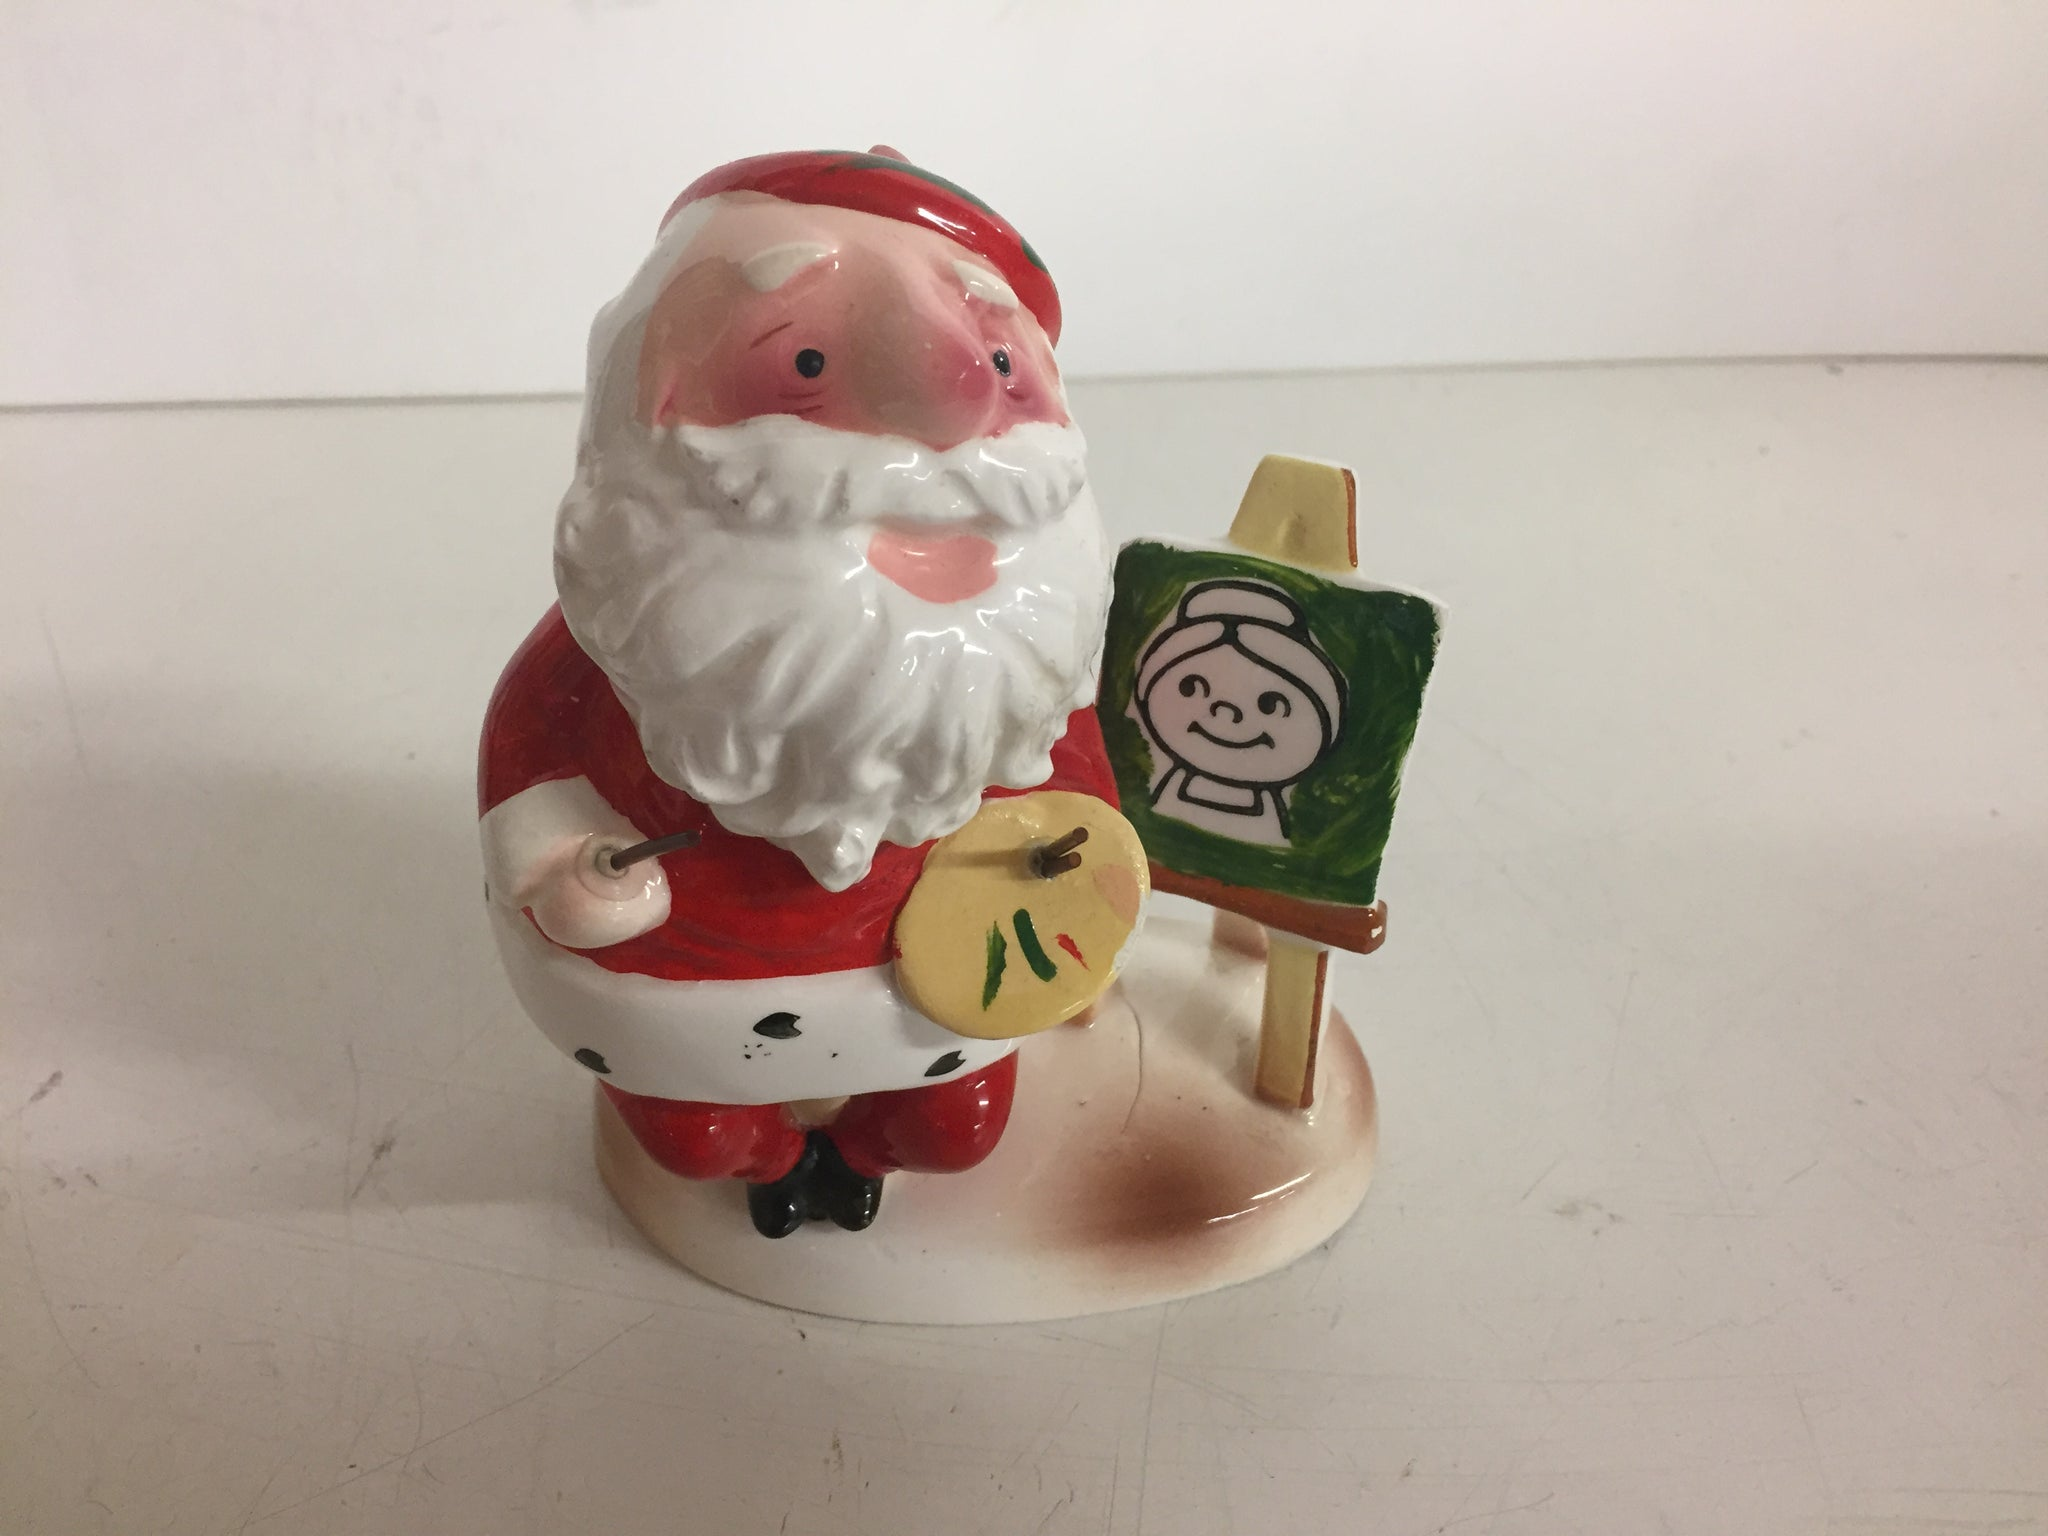 Vintage 1980's Enesco Artistic Santa Clause Ceramic Figurine Painting Christmas Holiday